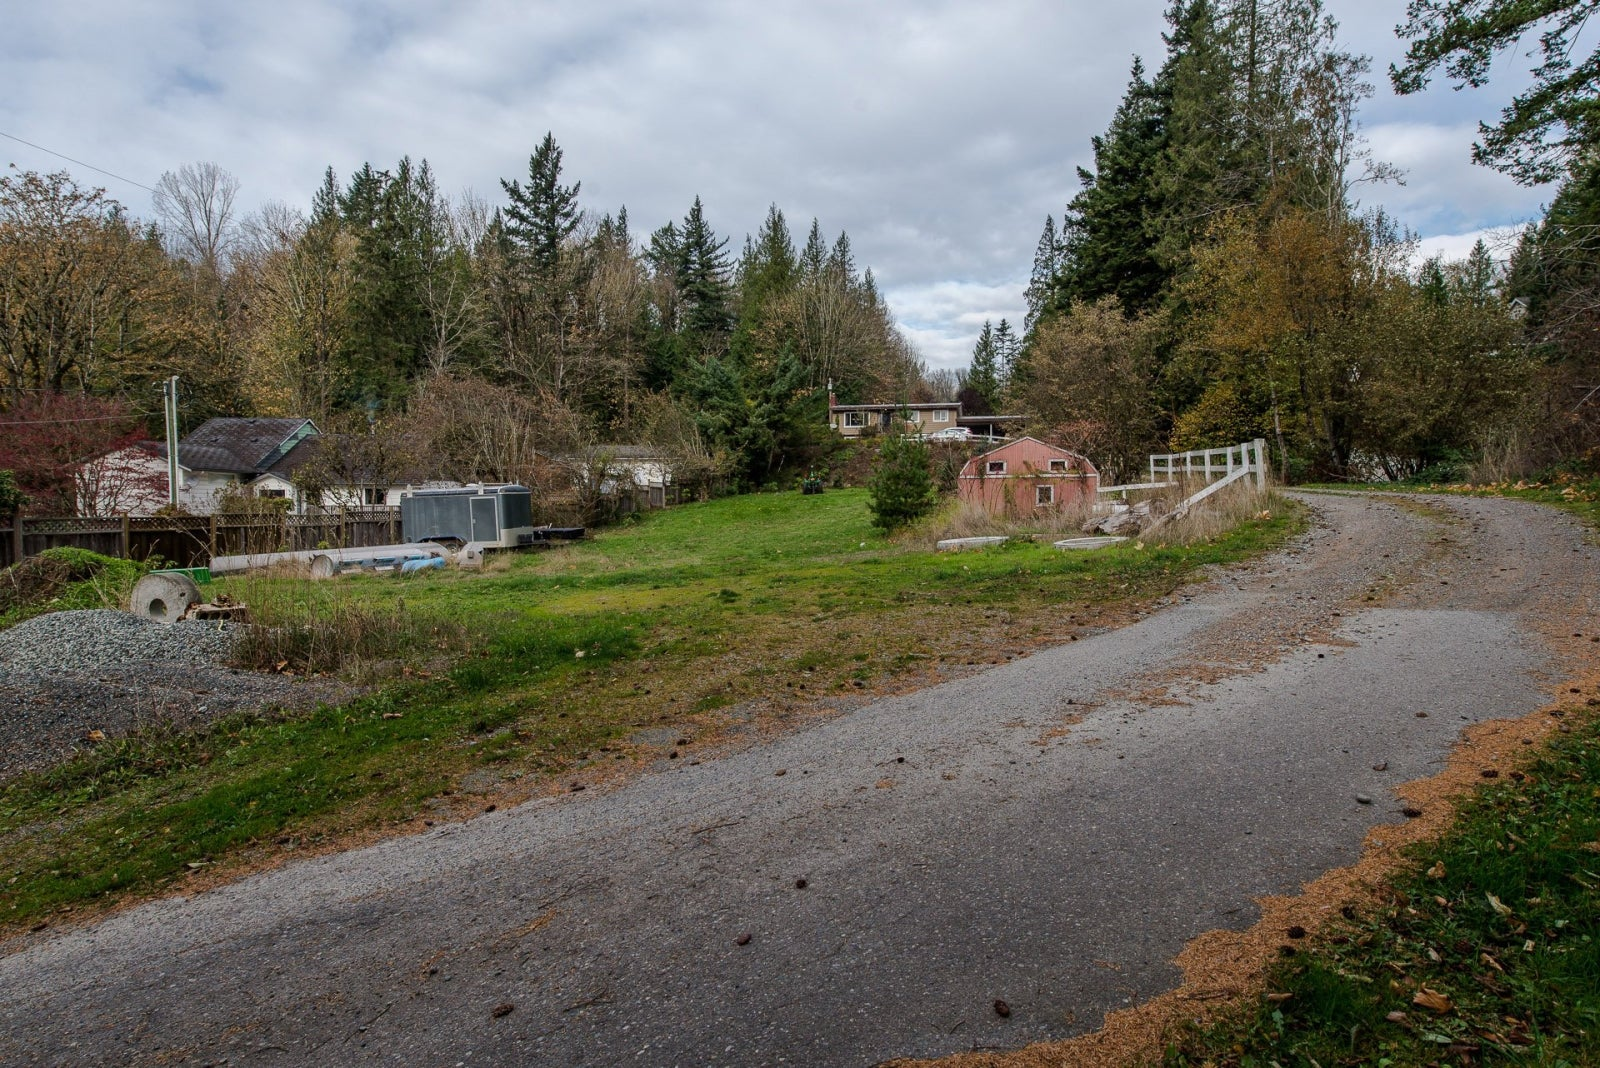 37471 ATKINSON ROAD - Sumas Mountain House with Acreage for sale, 3 Bedrooms (R2220193) #3